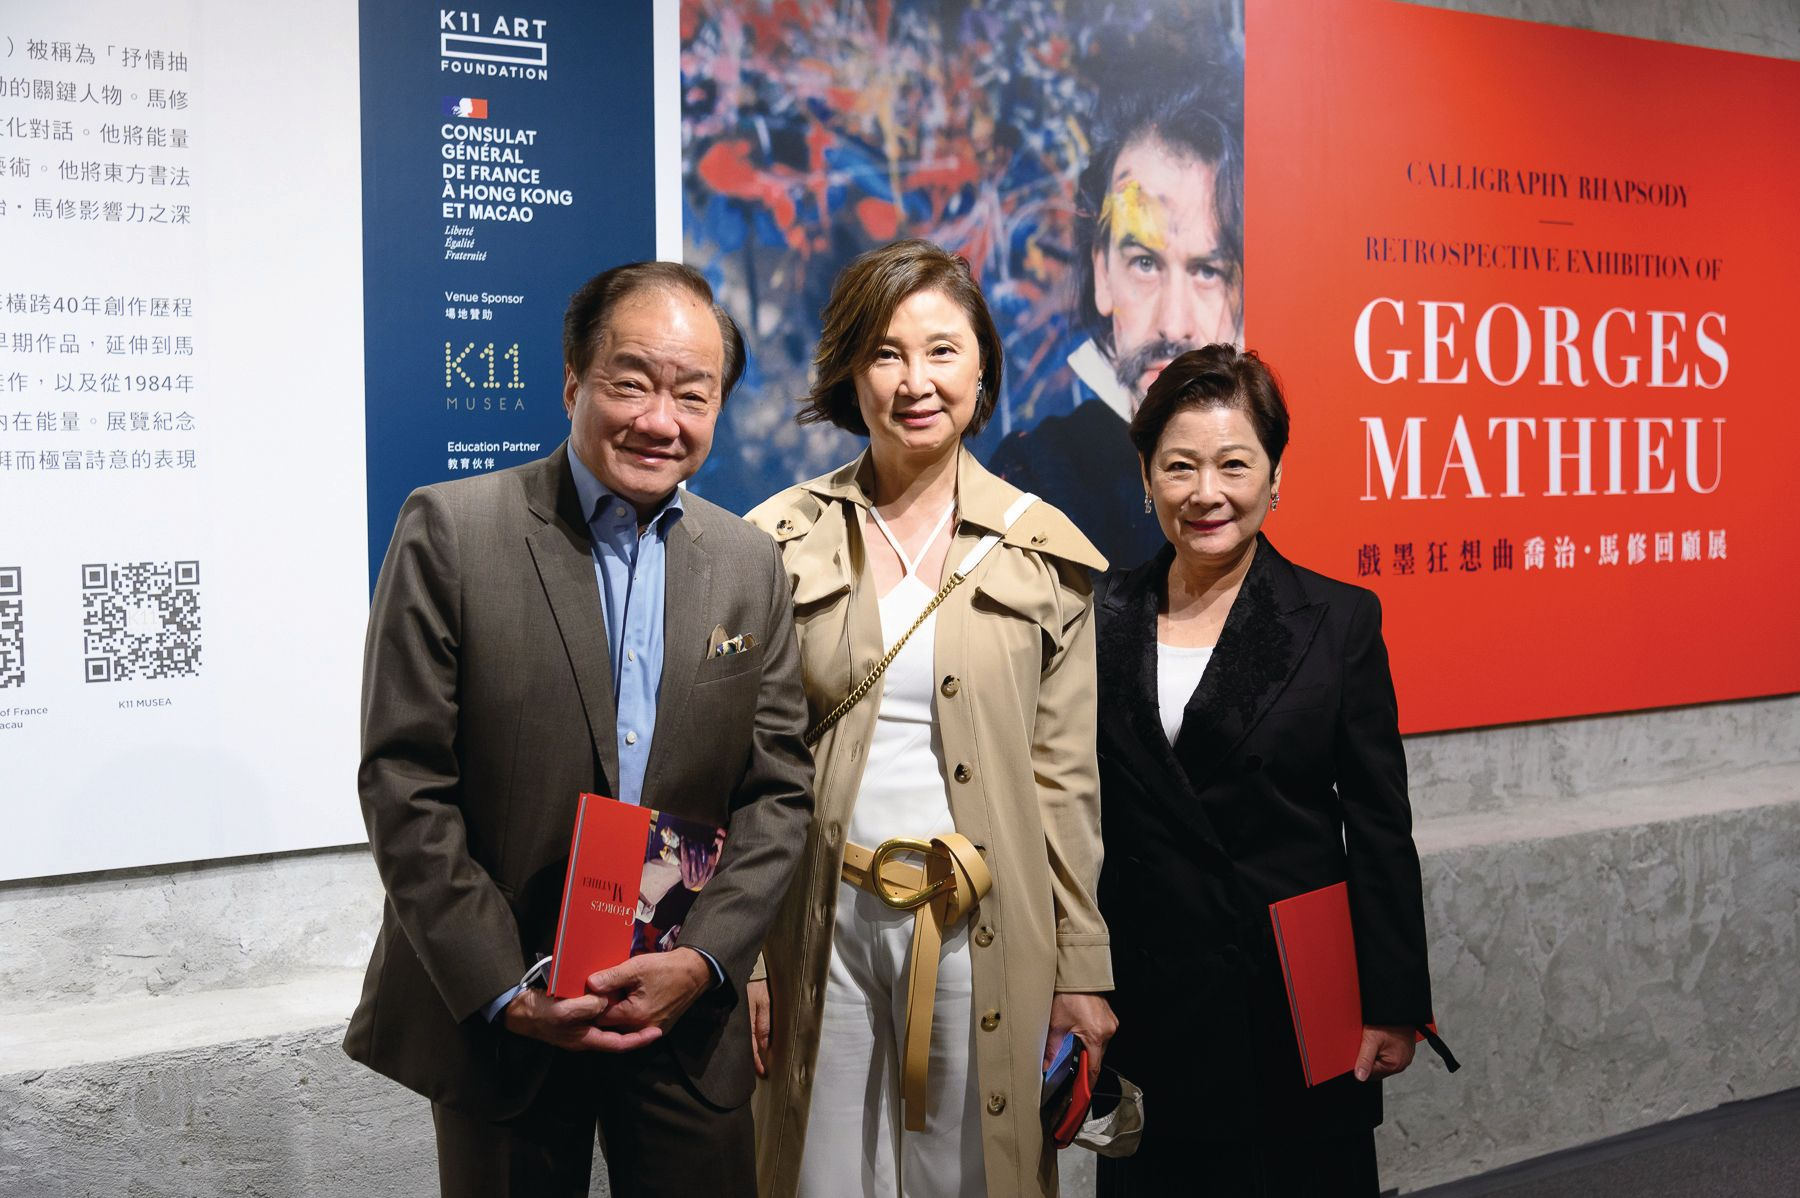 Late Painter Georges Mathieu's Retrospective Exhibition Opening At K11 Musea